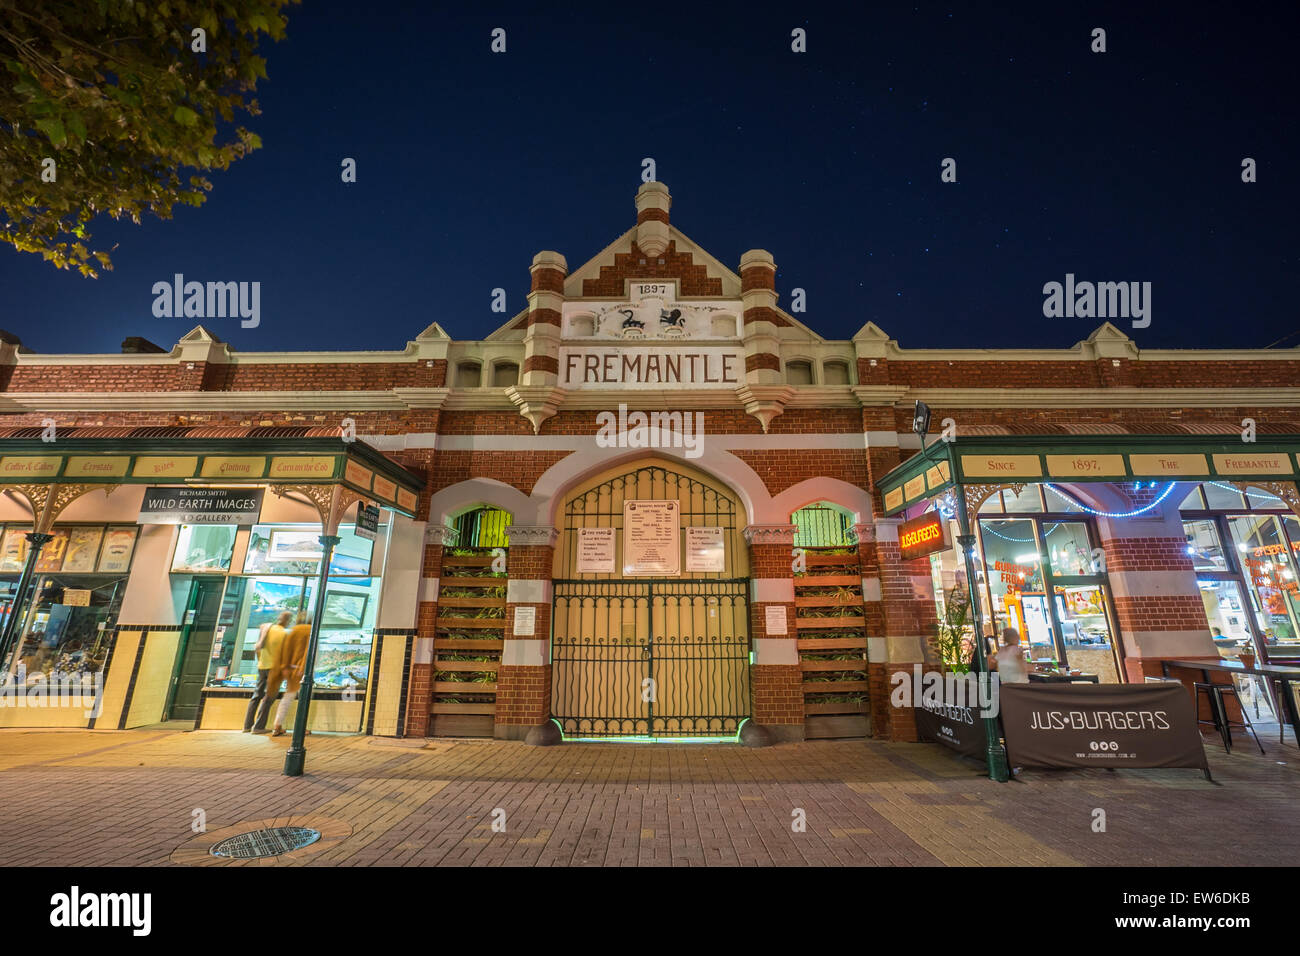 Fremantle, Perth, Australia - March 6, 2015 : Fremantle Market, a public market which built on 1897. - Stock Image